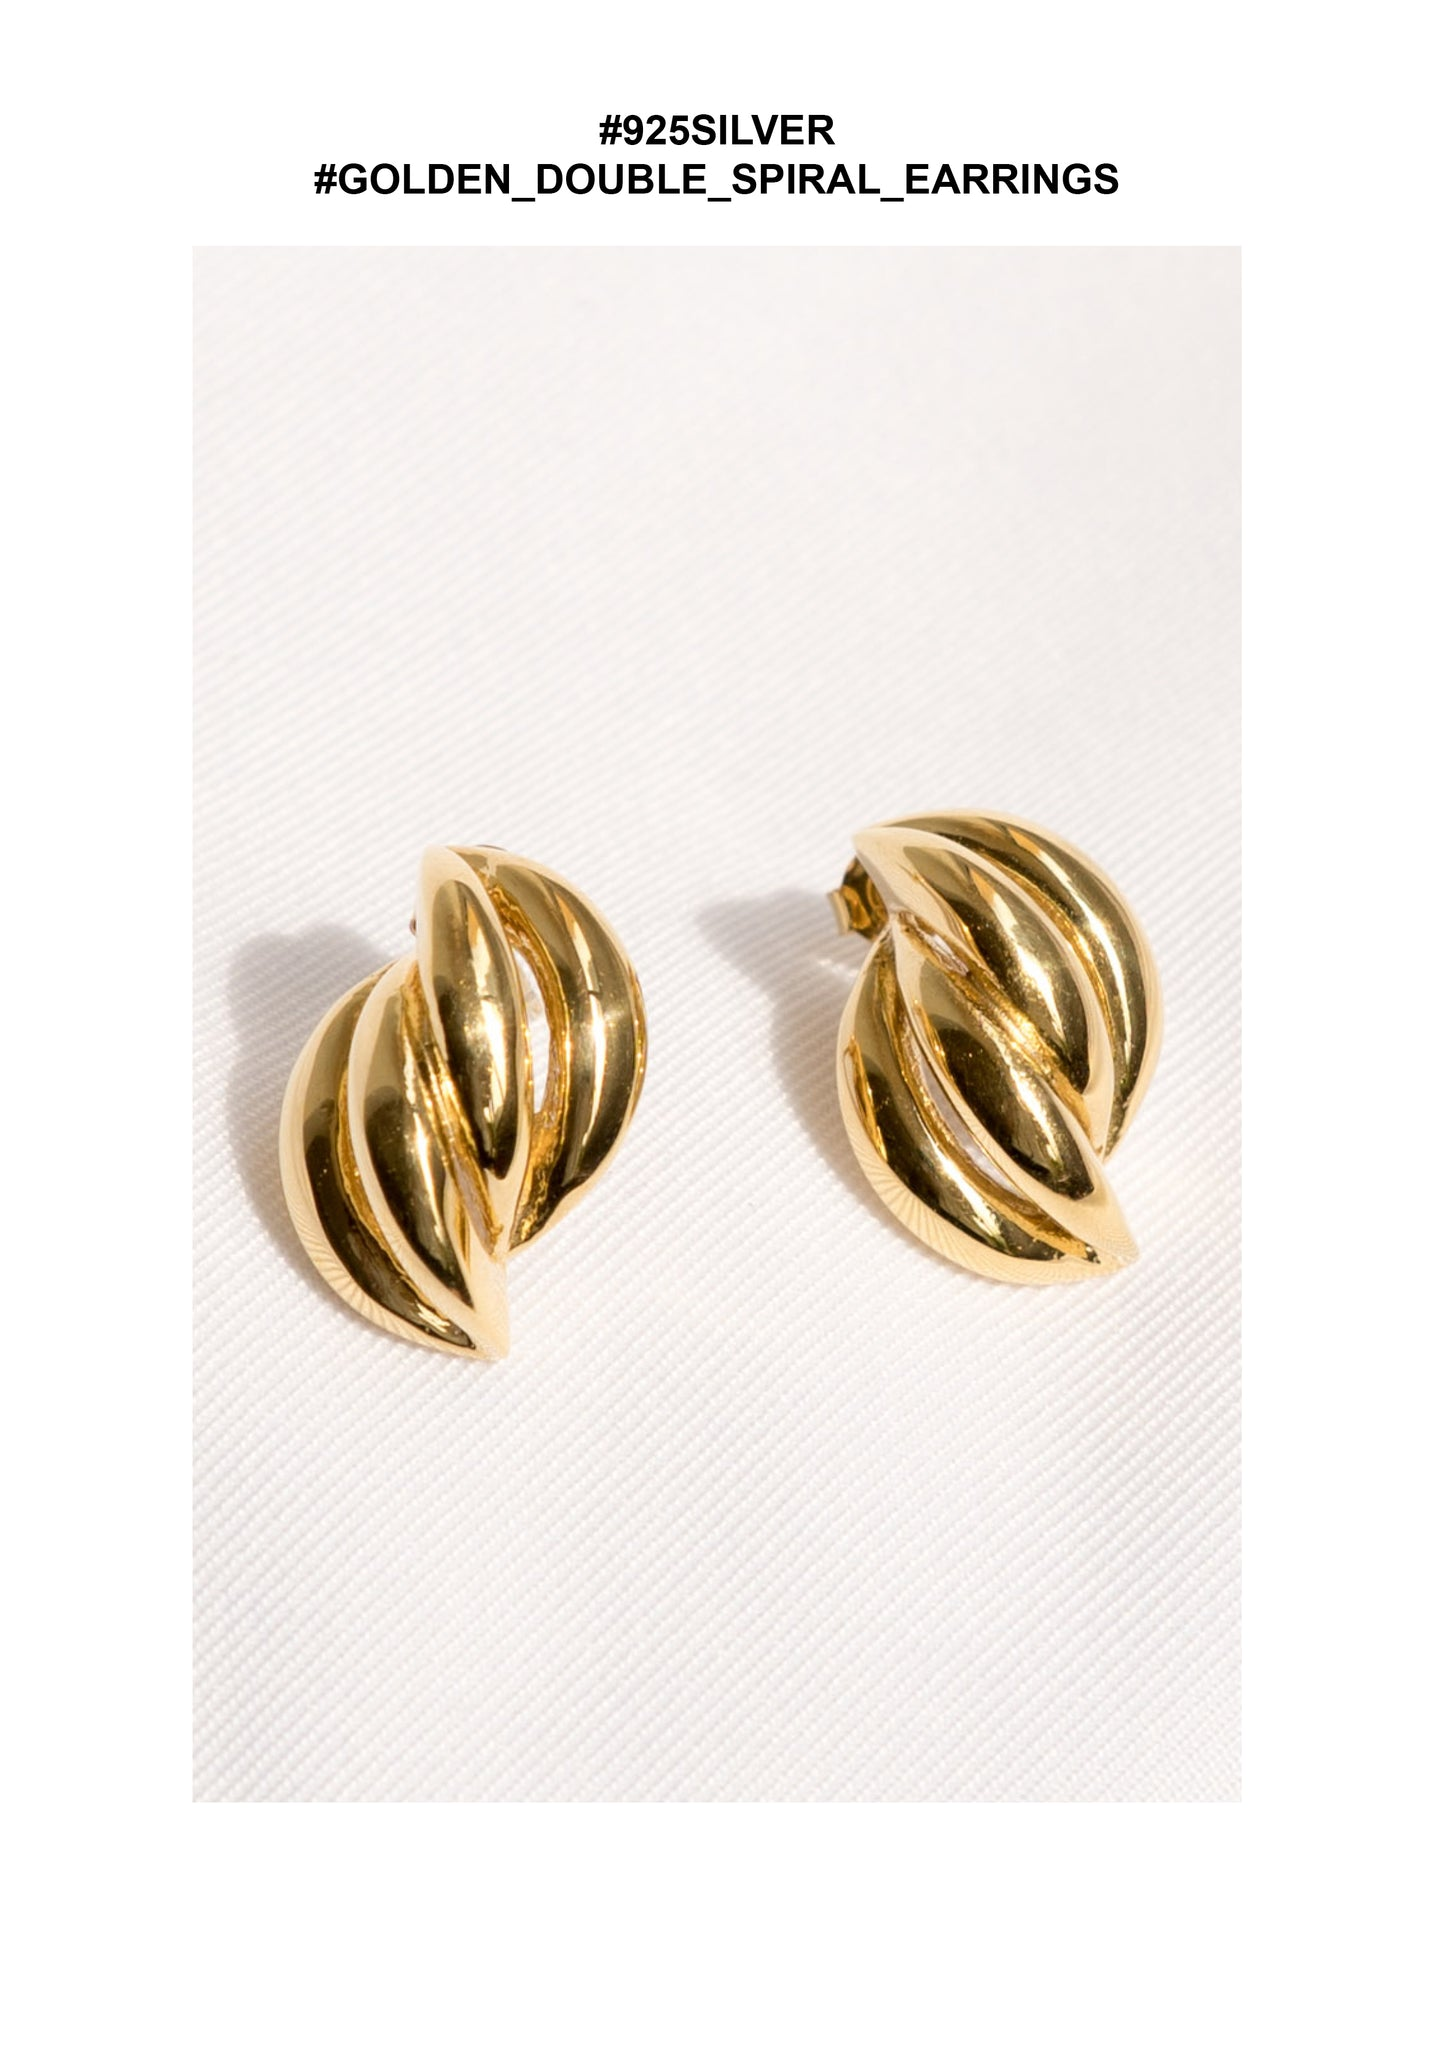 925 Silver Golden Double Spiral Earrings - whoami